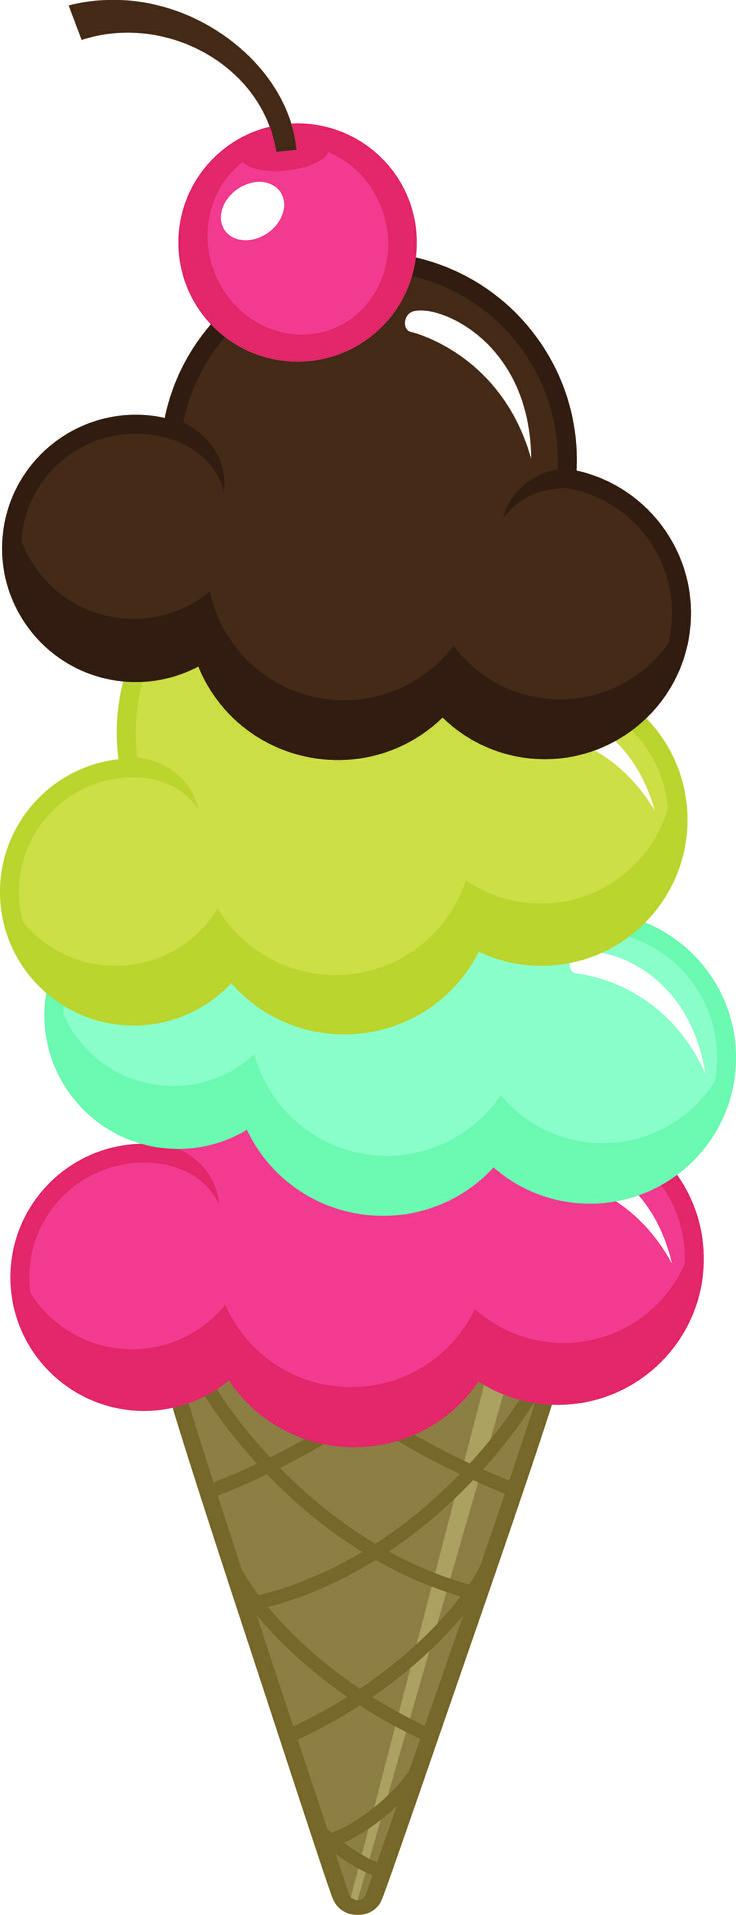 736x1915 Unique Ice Cream Scoop Clipart Photos